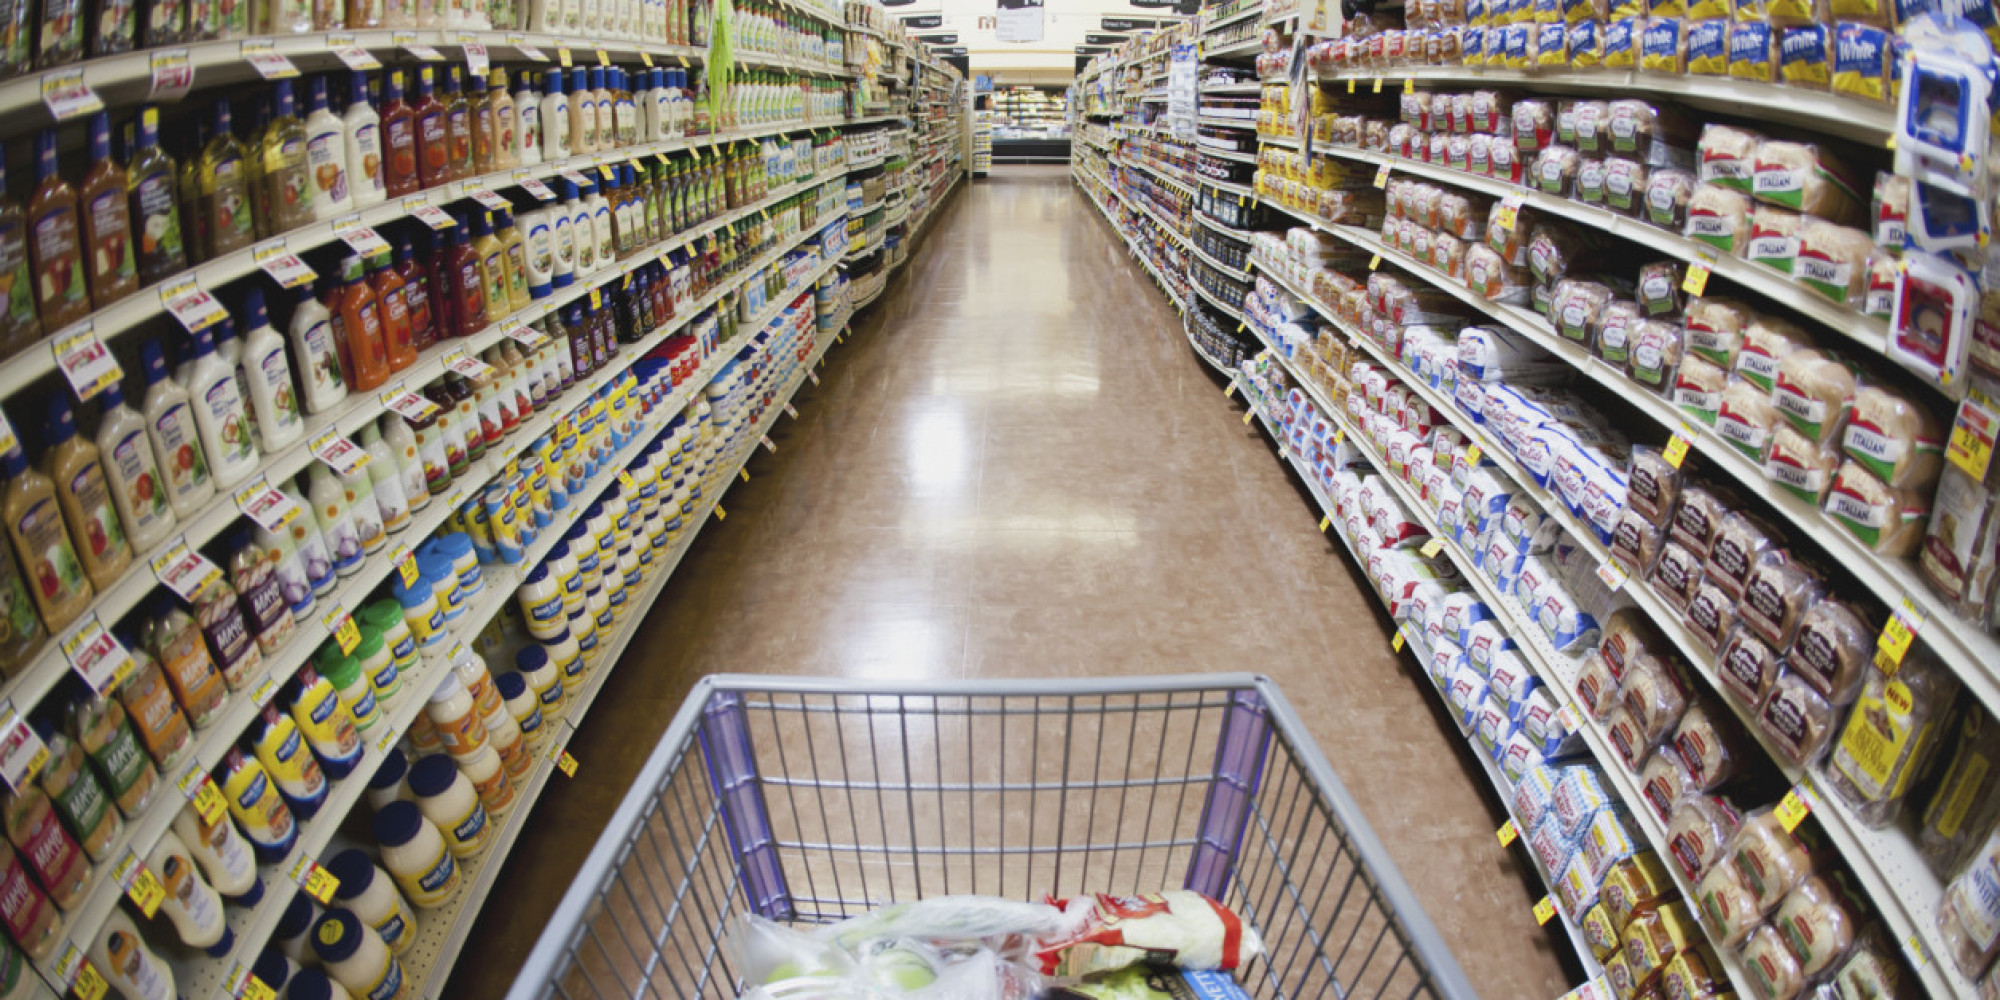 aisle grocery cooking feeding budget crunch america